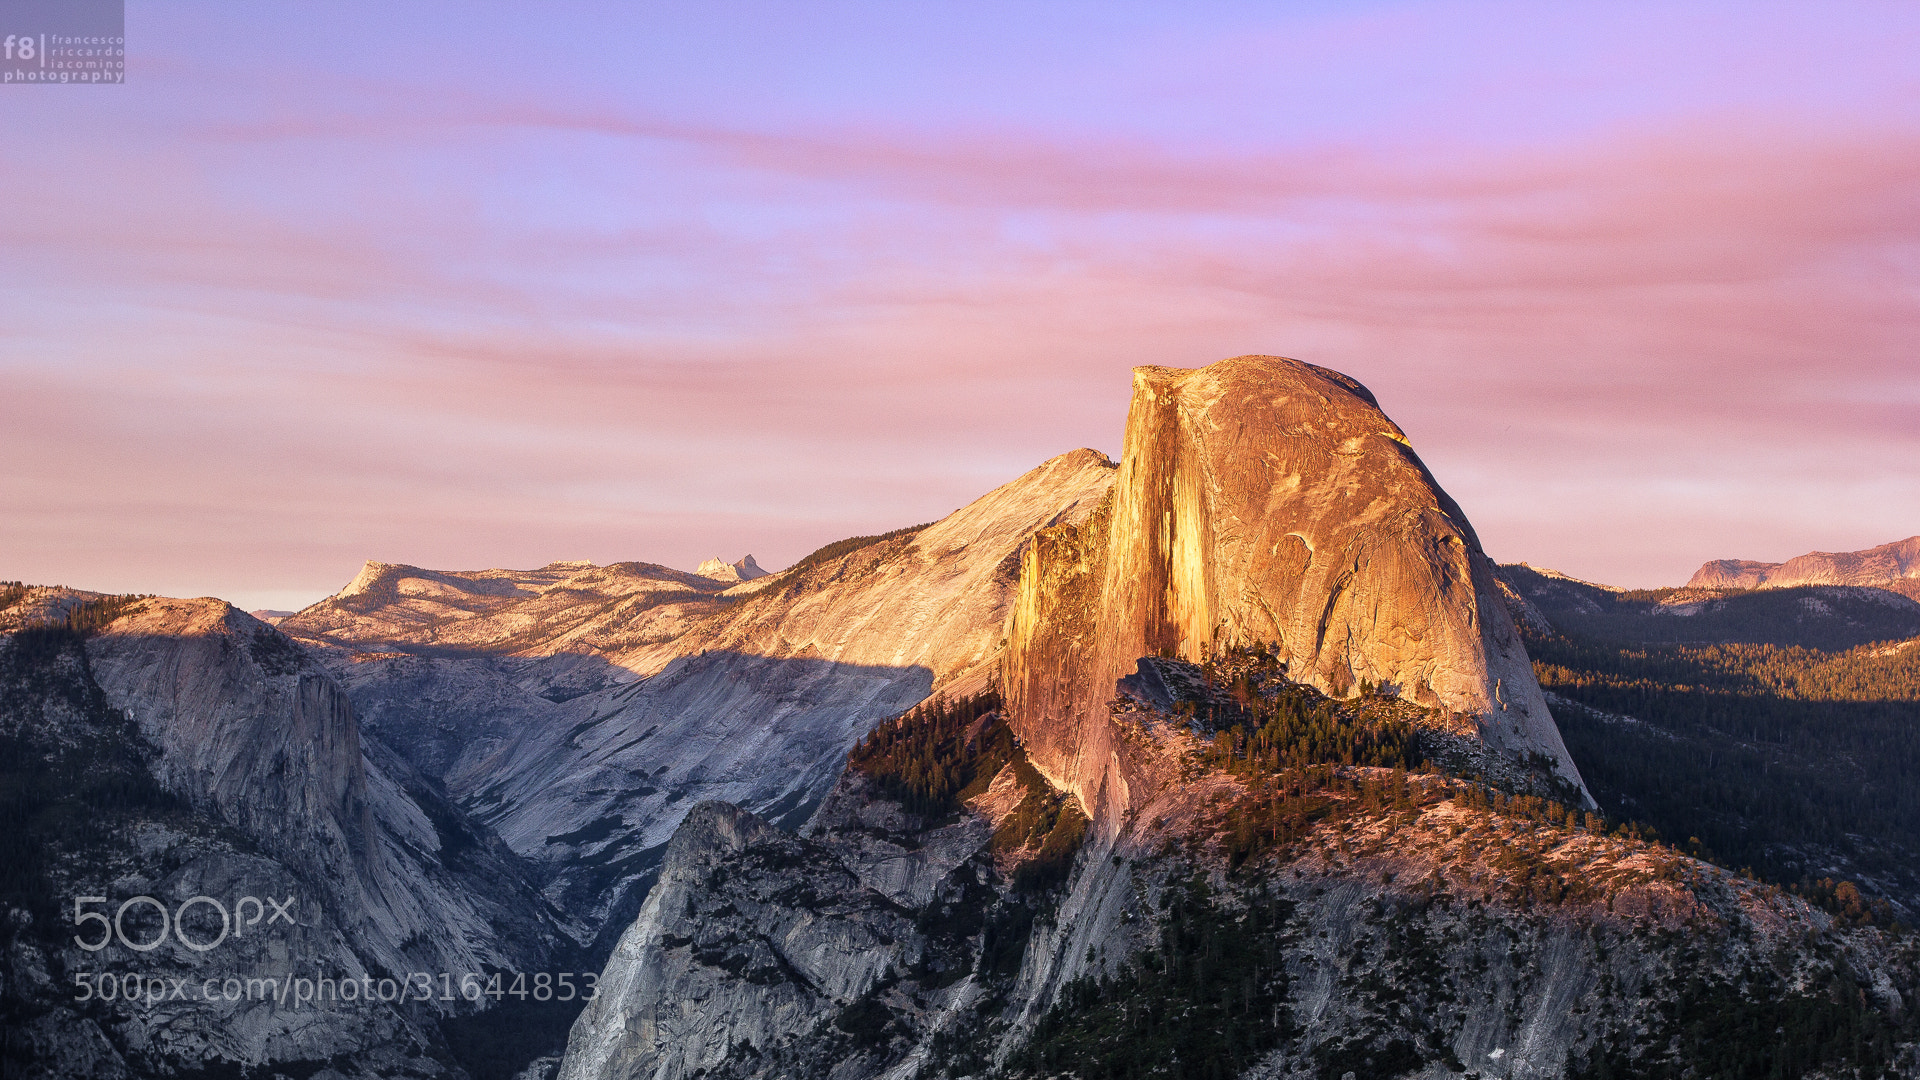 Photograph Yosemite by Francesco Riccardo Iacomino on 500px